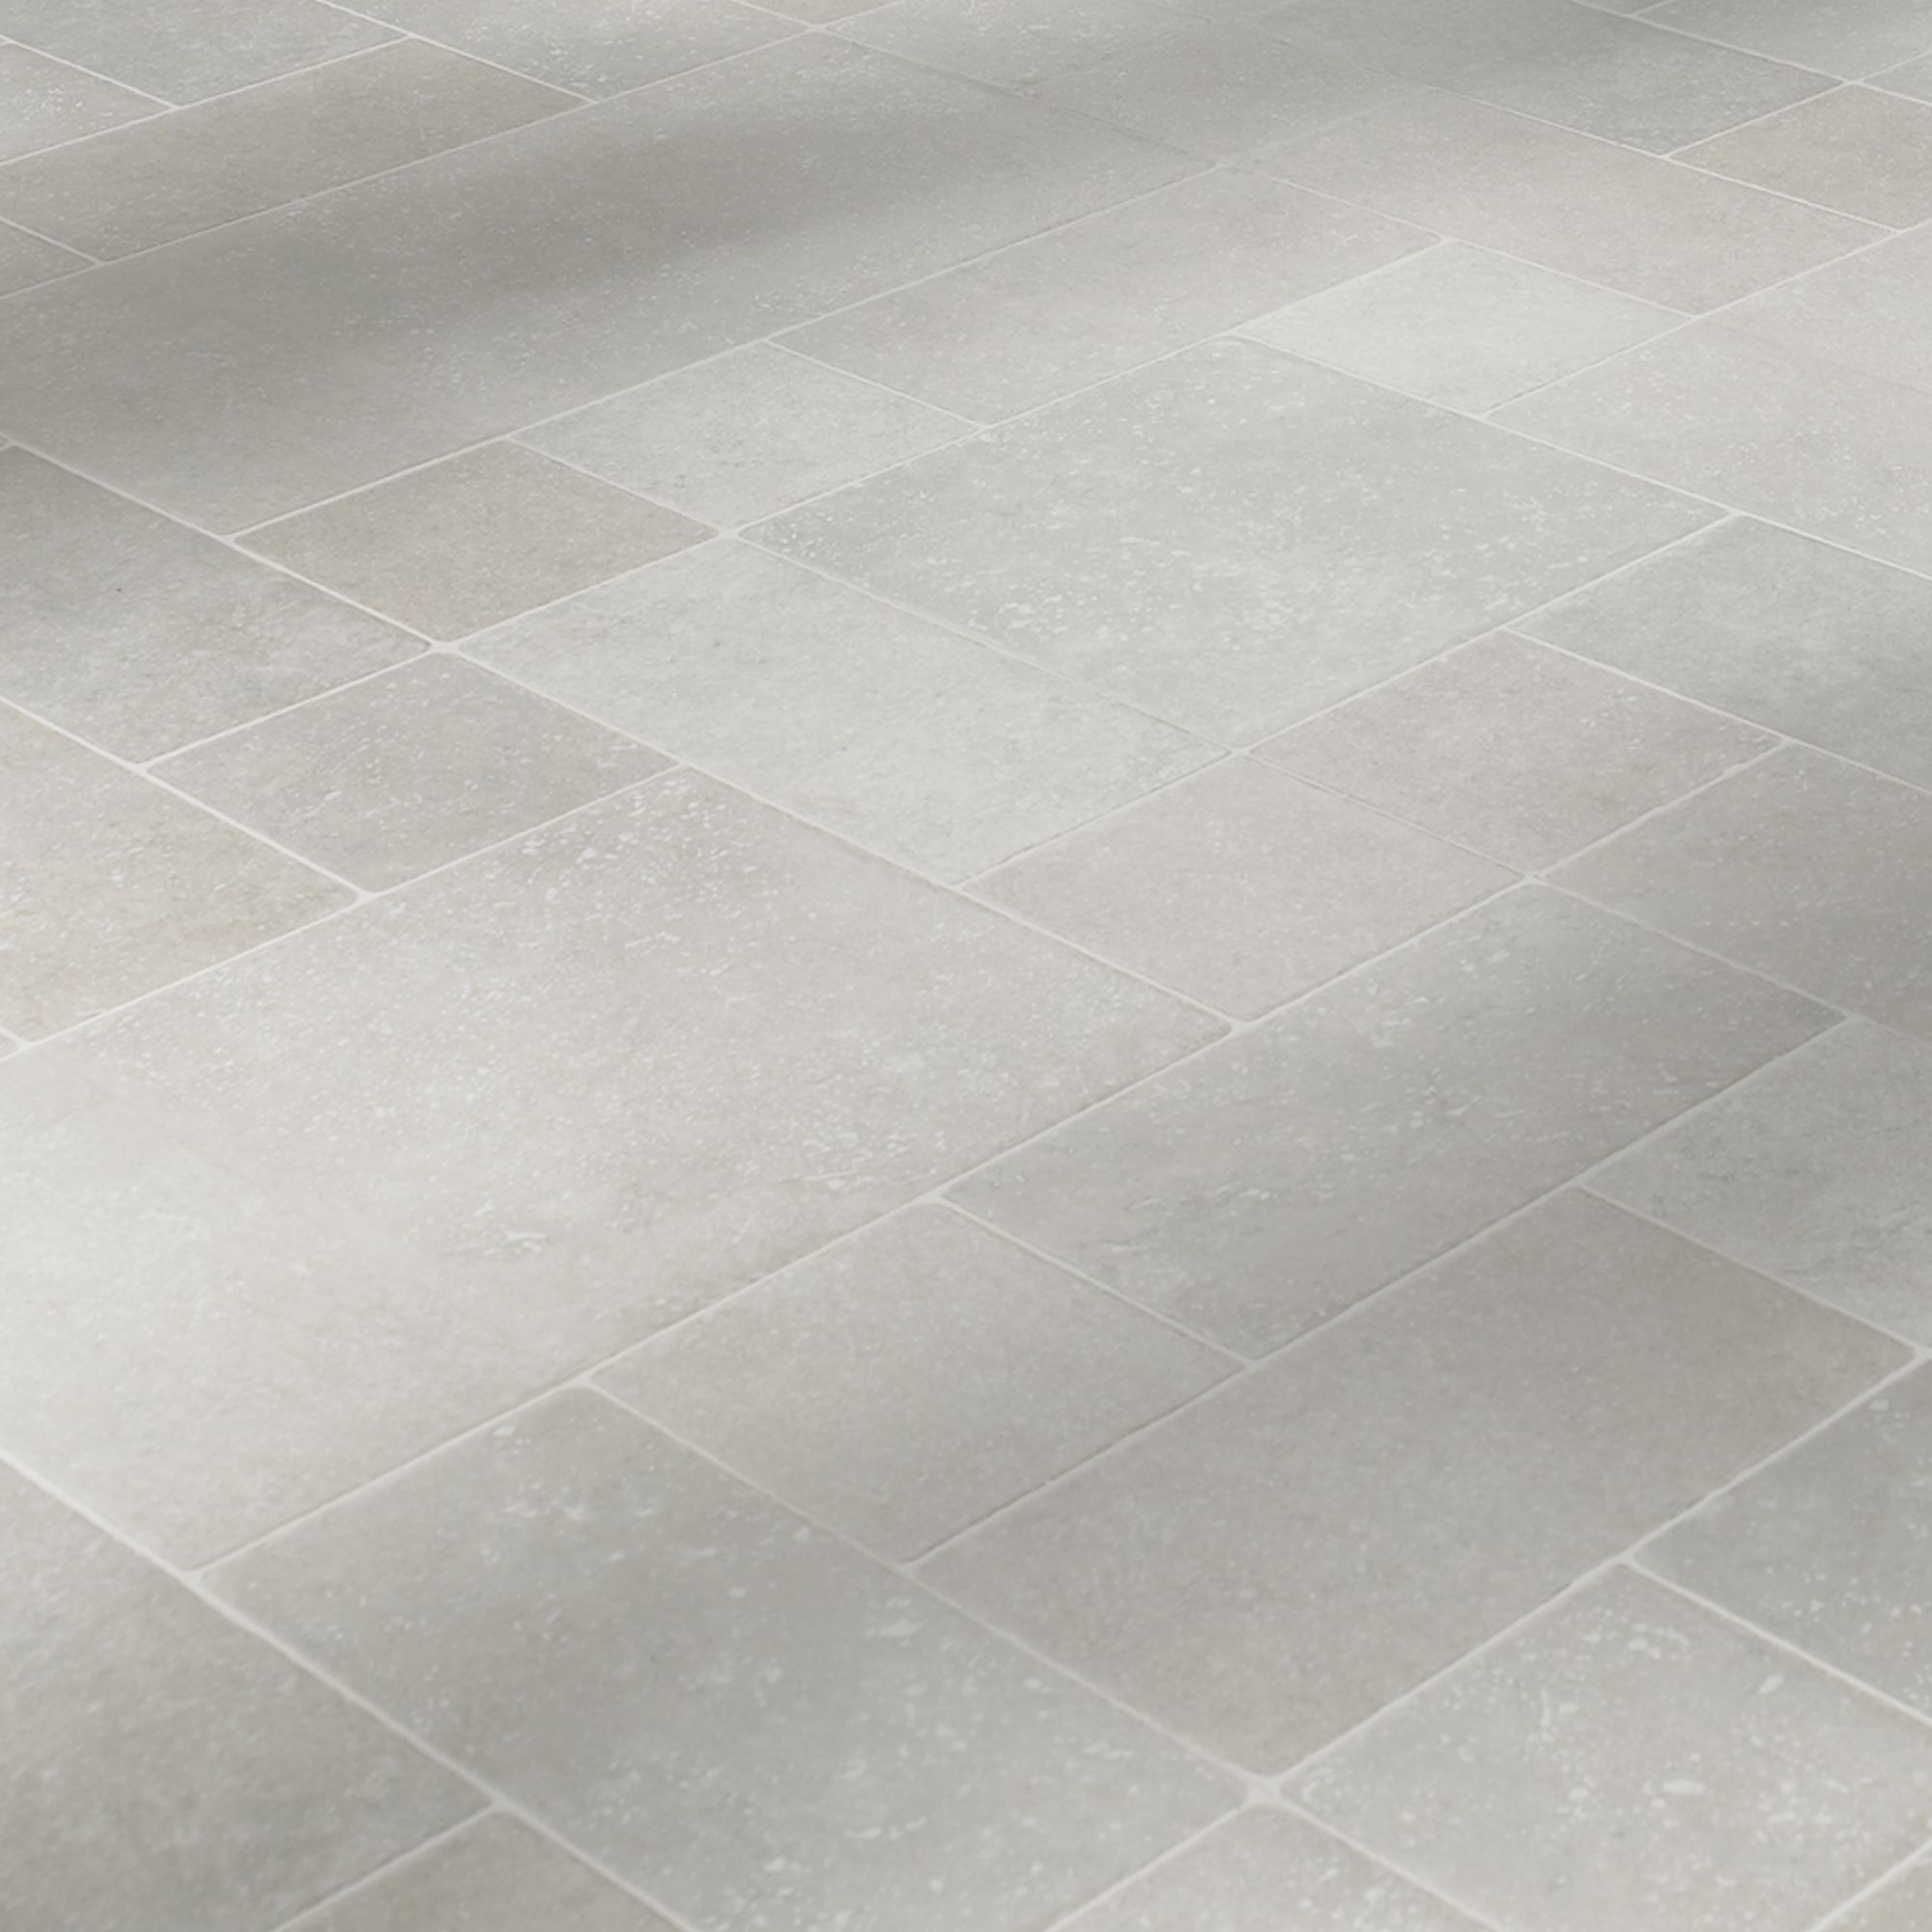 Barbarita grey limestone effect laminate flooring 186 m pack barbarita grey limestone effect laminate flooring 186 m pack departments diy at bq dailygadgetfo Images